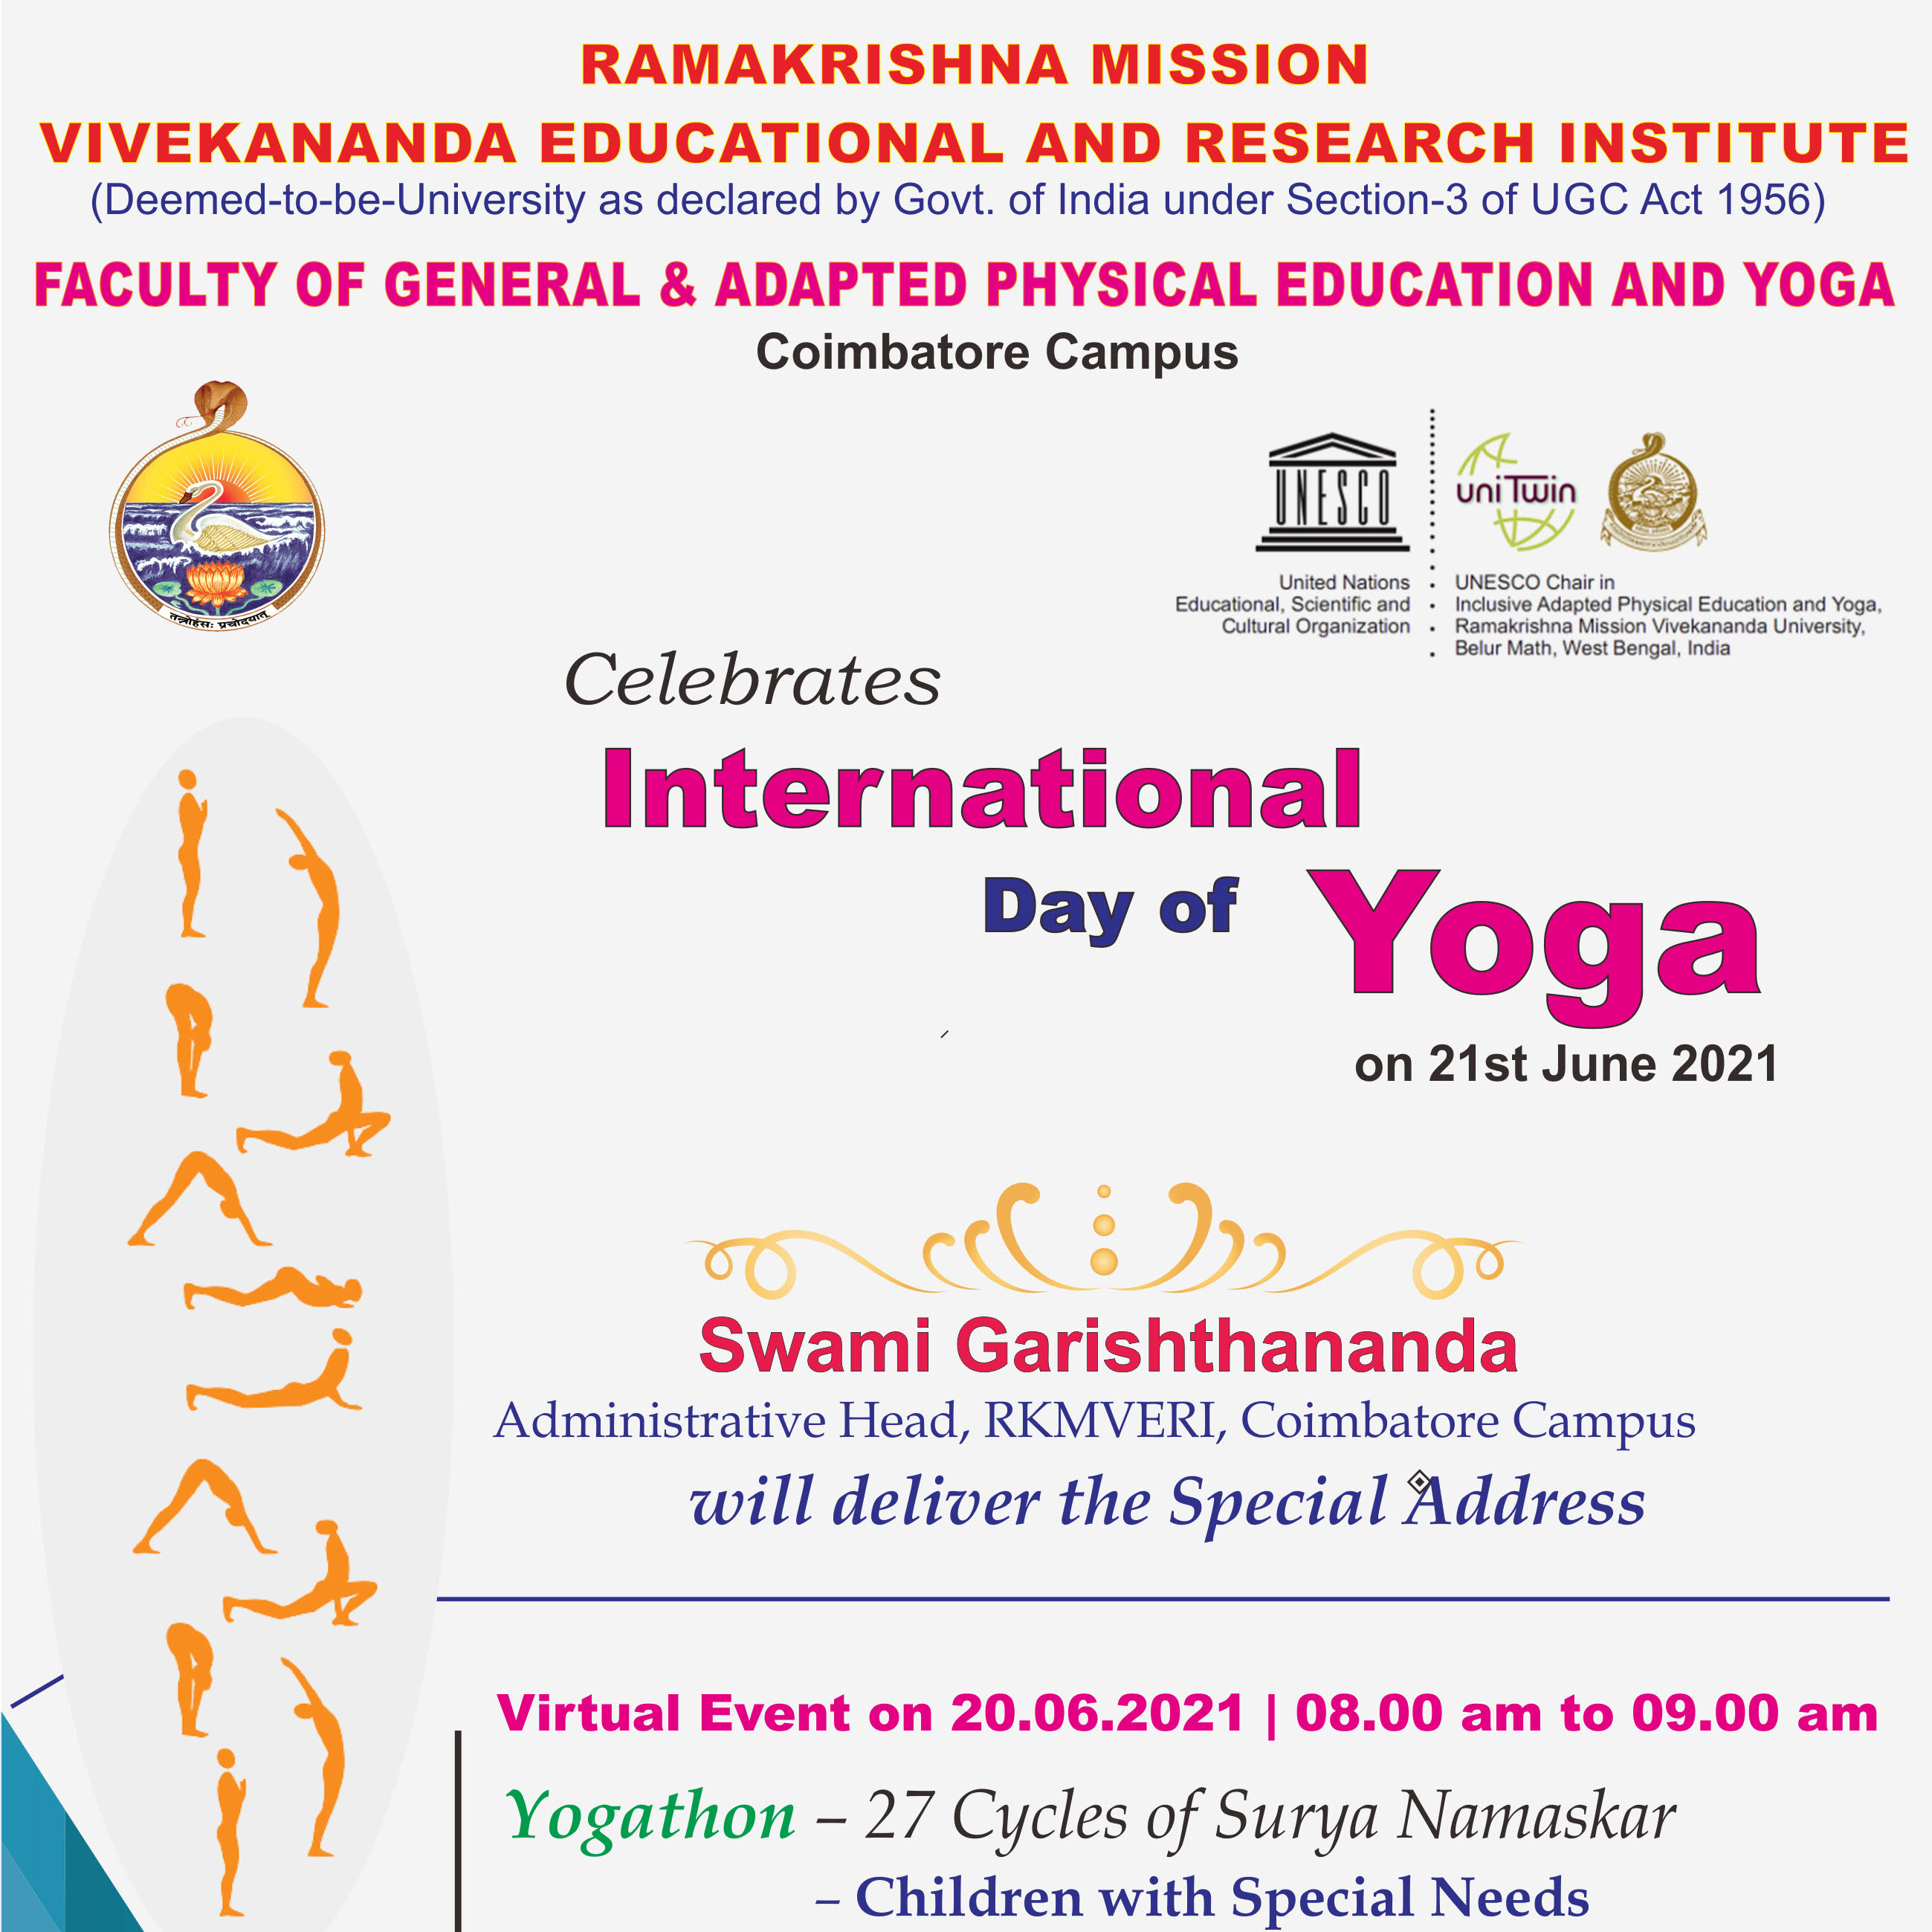 A VIRTUAL EVENT ON THE INTERNATIONAL DAY OF YOGA